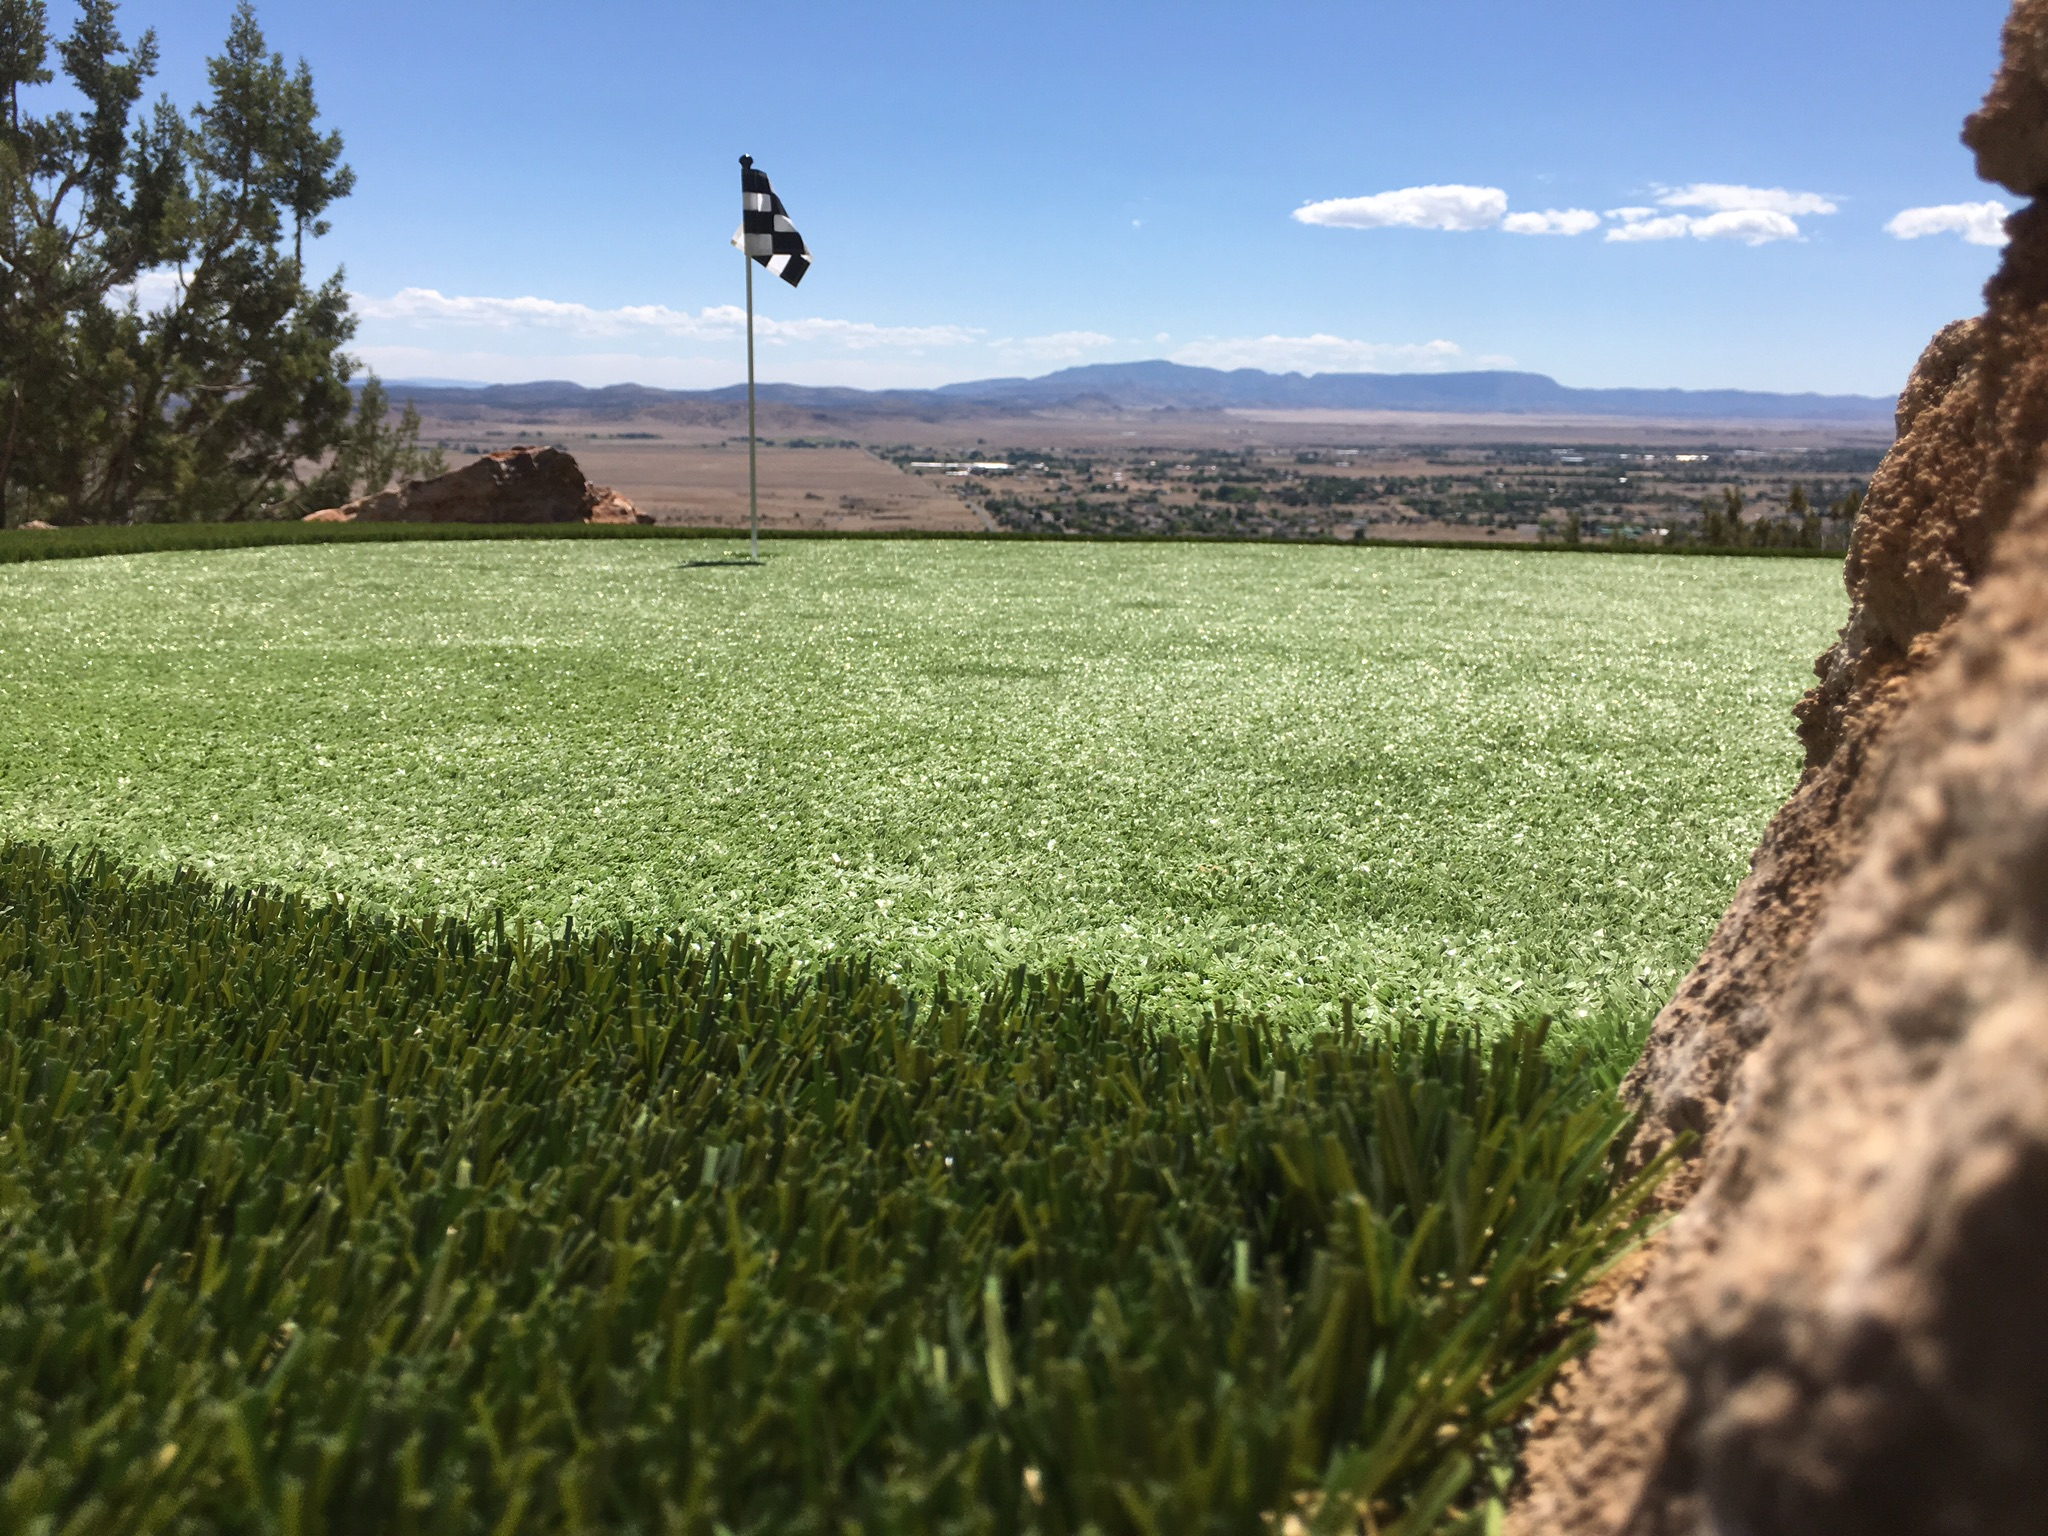 Hilltop Putting Green